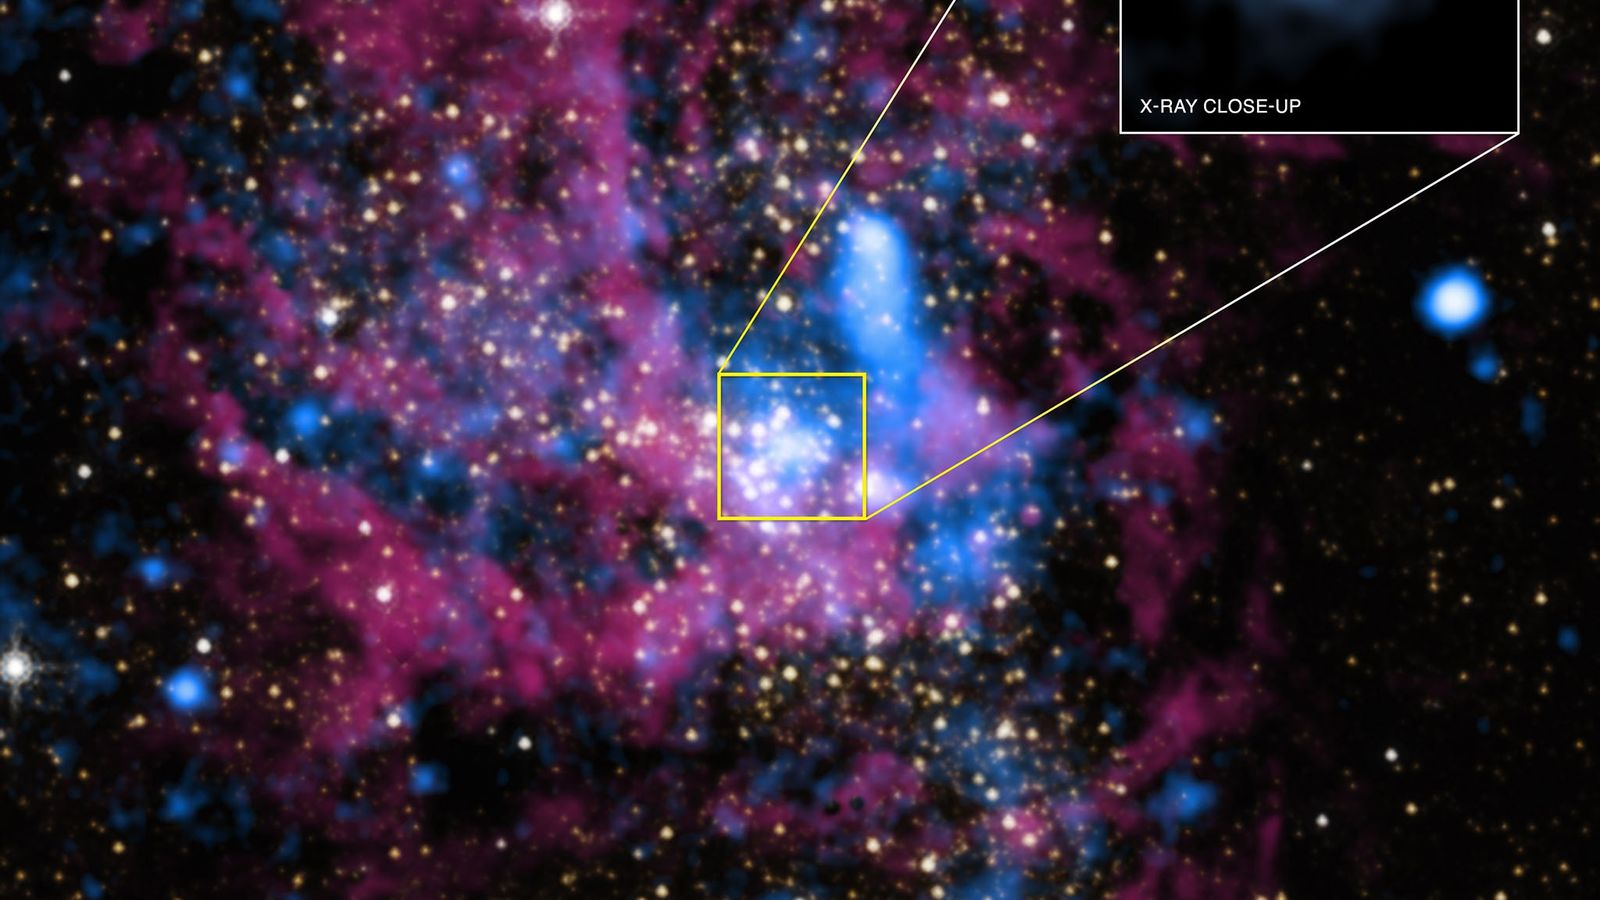 The center of the Milky Way galaxy, with the supermassive black hole Sagittarius A* (Sgr A*), ...